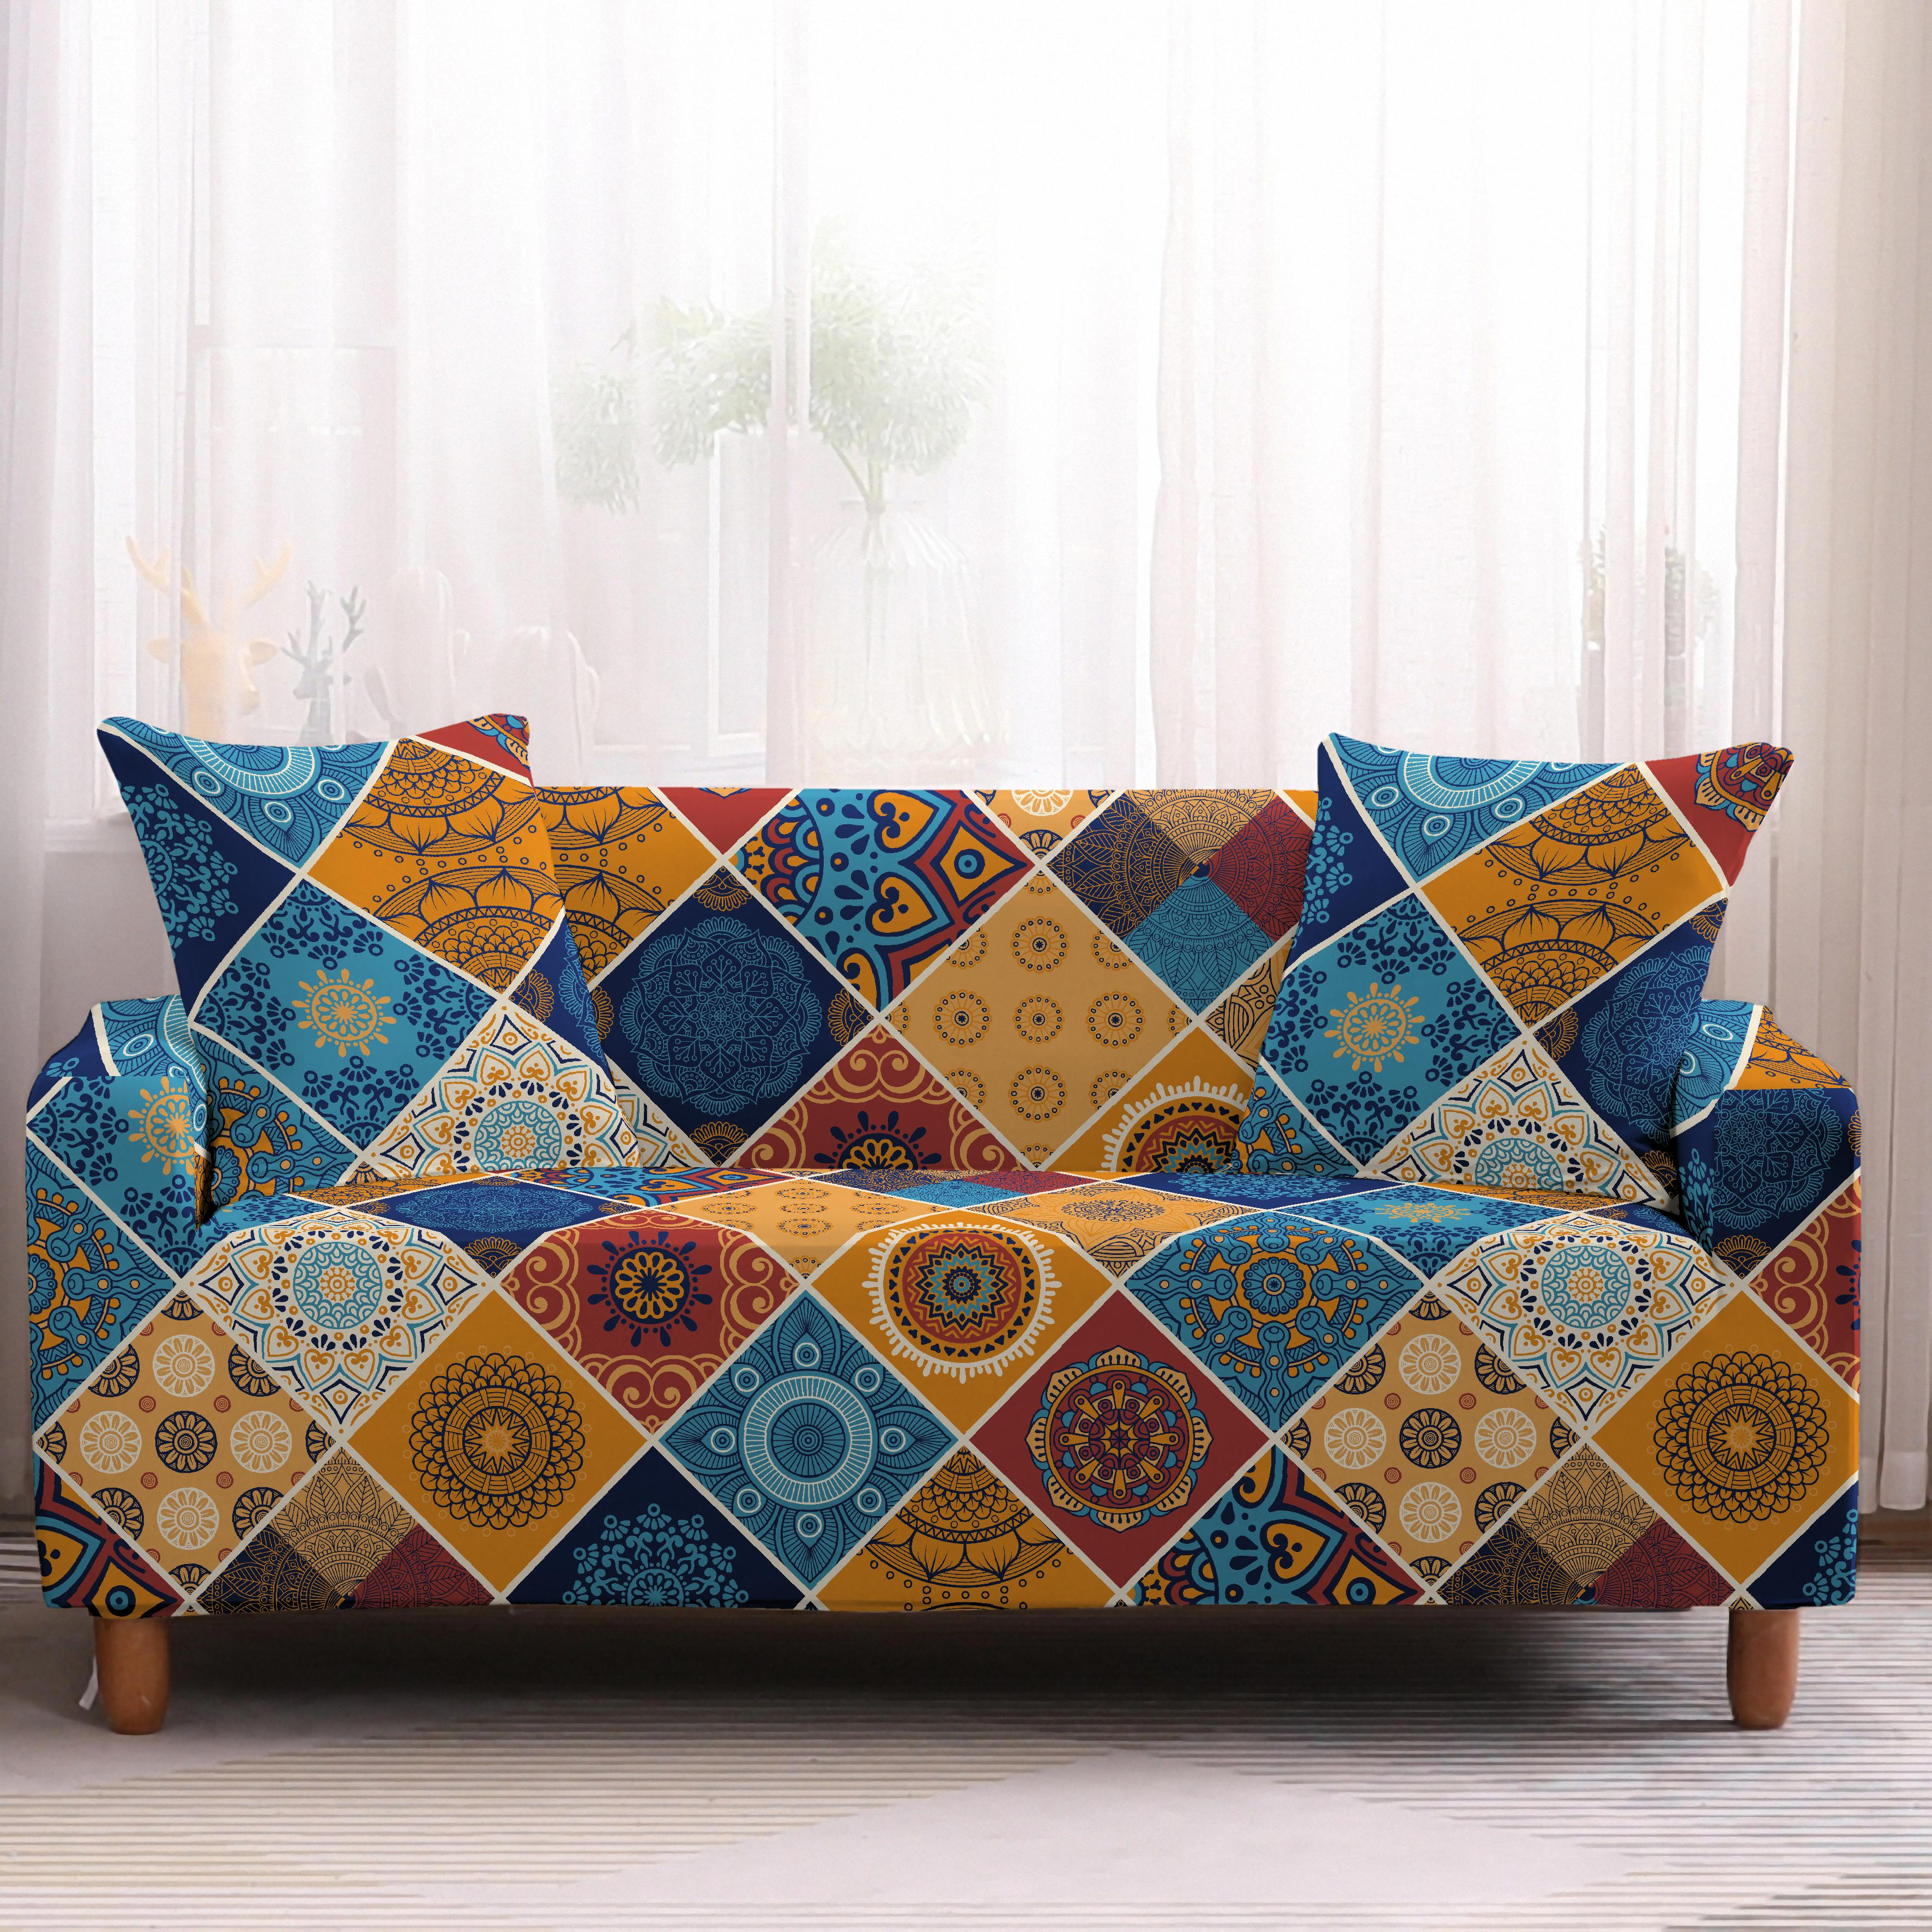 Bohemia Slipcovers Sofa Cover in Mandala Pattern to Protect Living Room Furniture from Stains and Dust 6